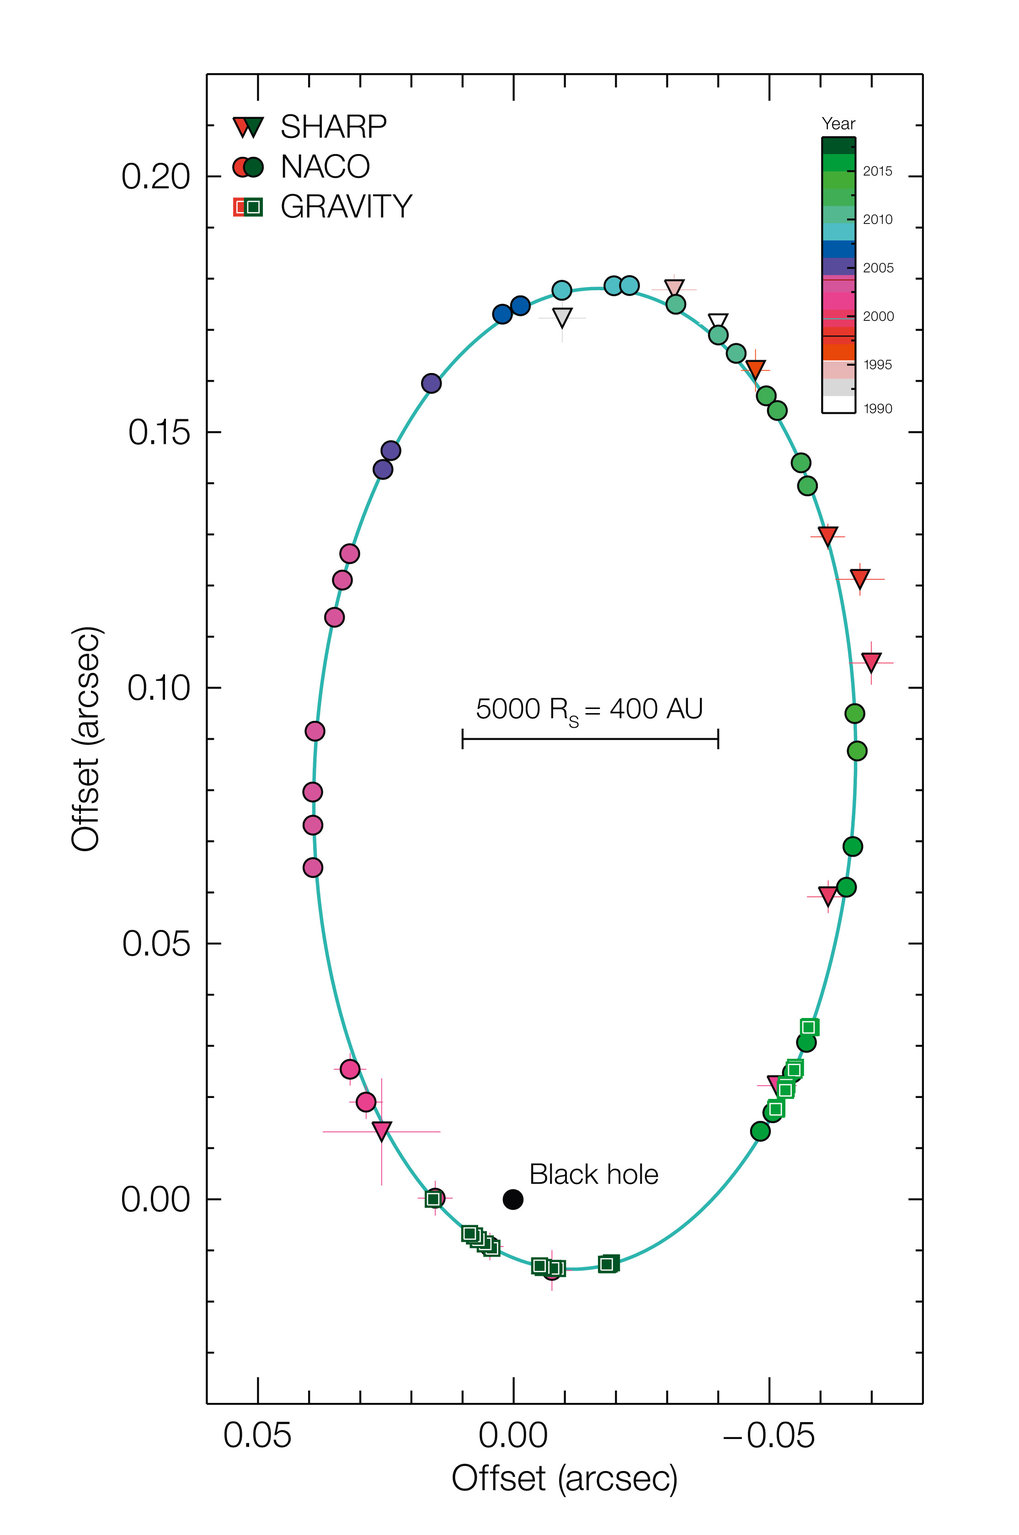 The S2 orbit around the Black Hole, measured with different instruments.